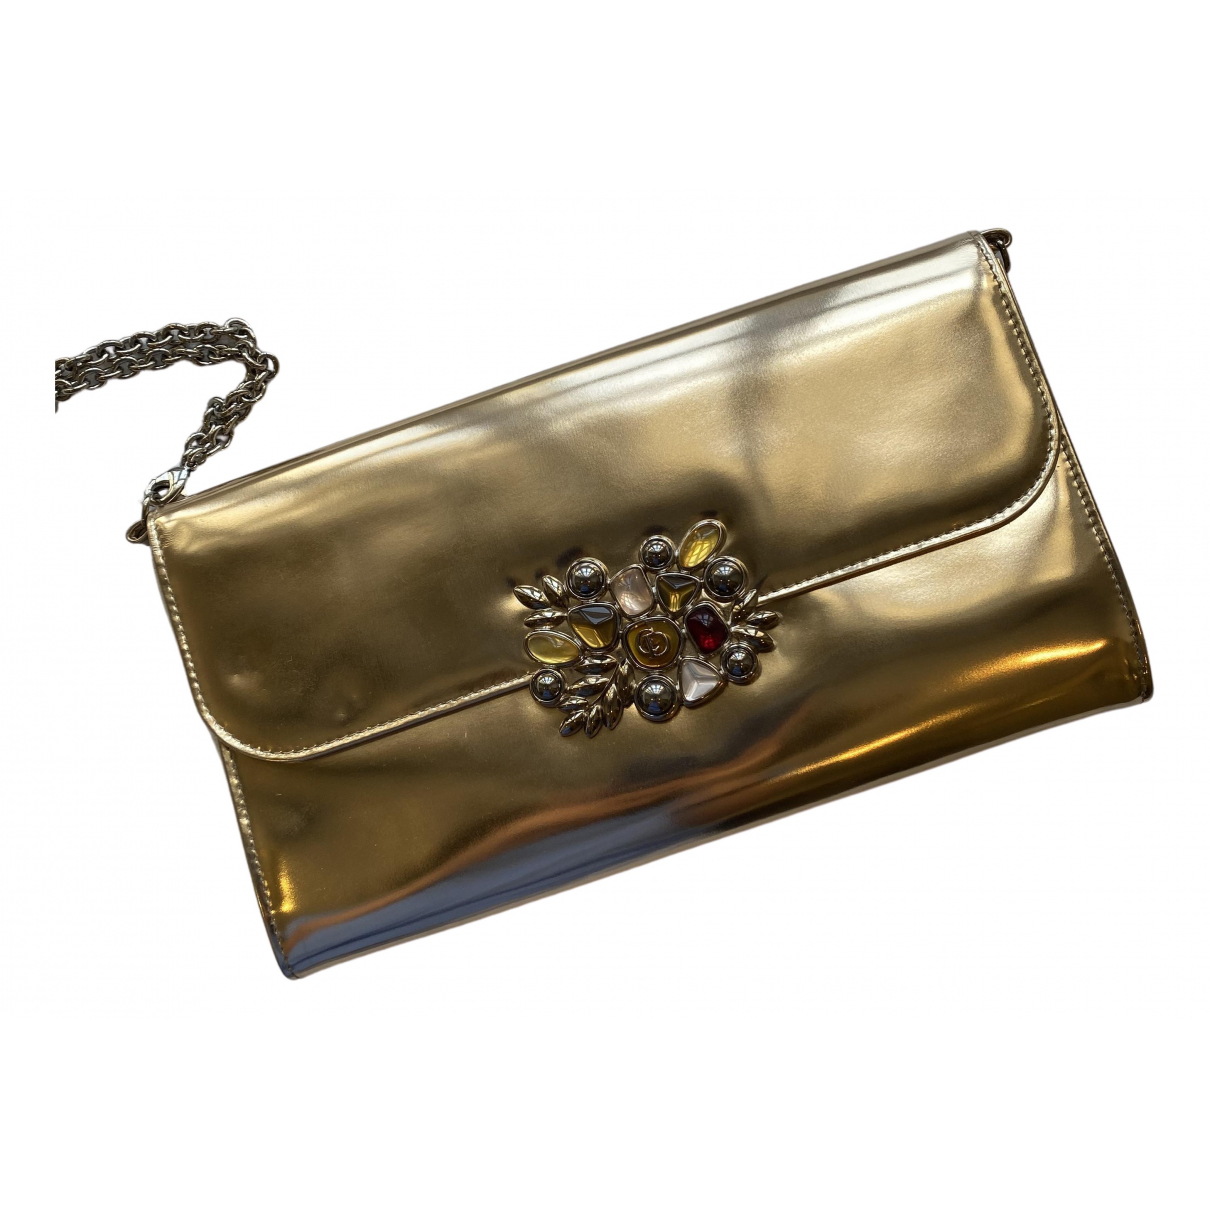 Dior \N Gold Leather Clutch bag for Women \N